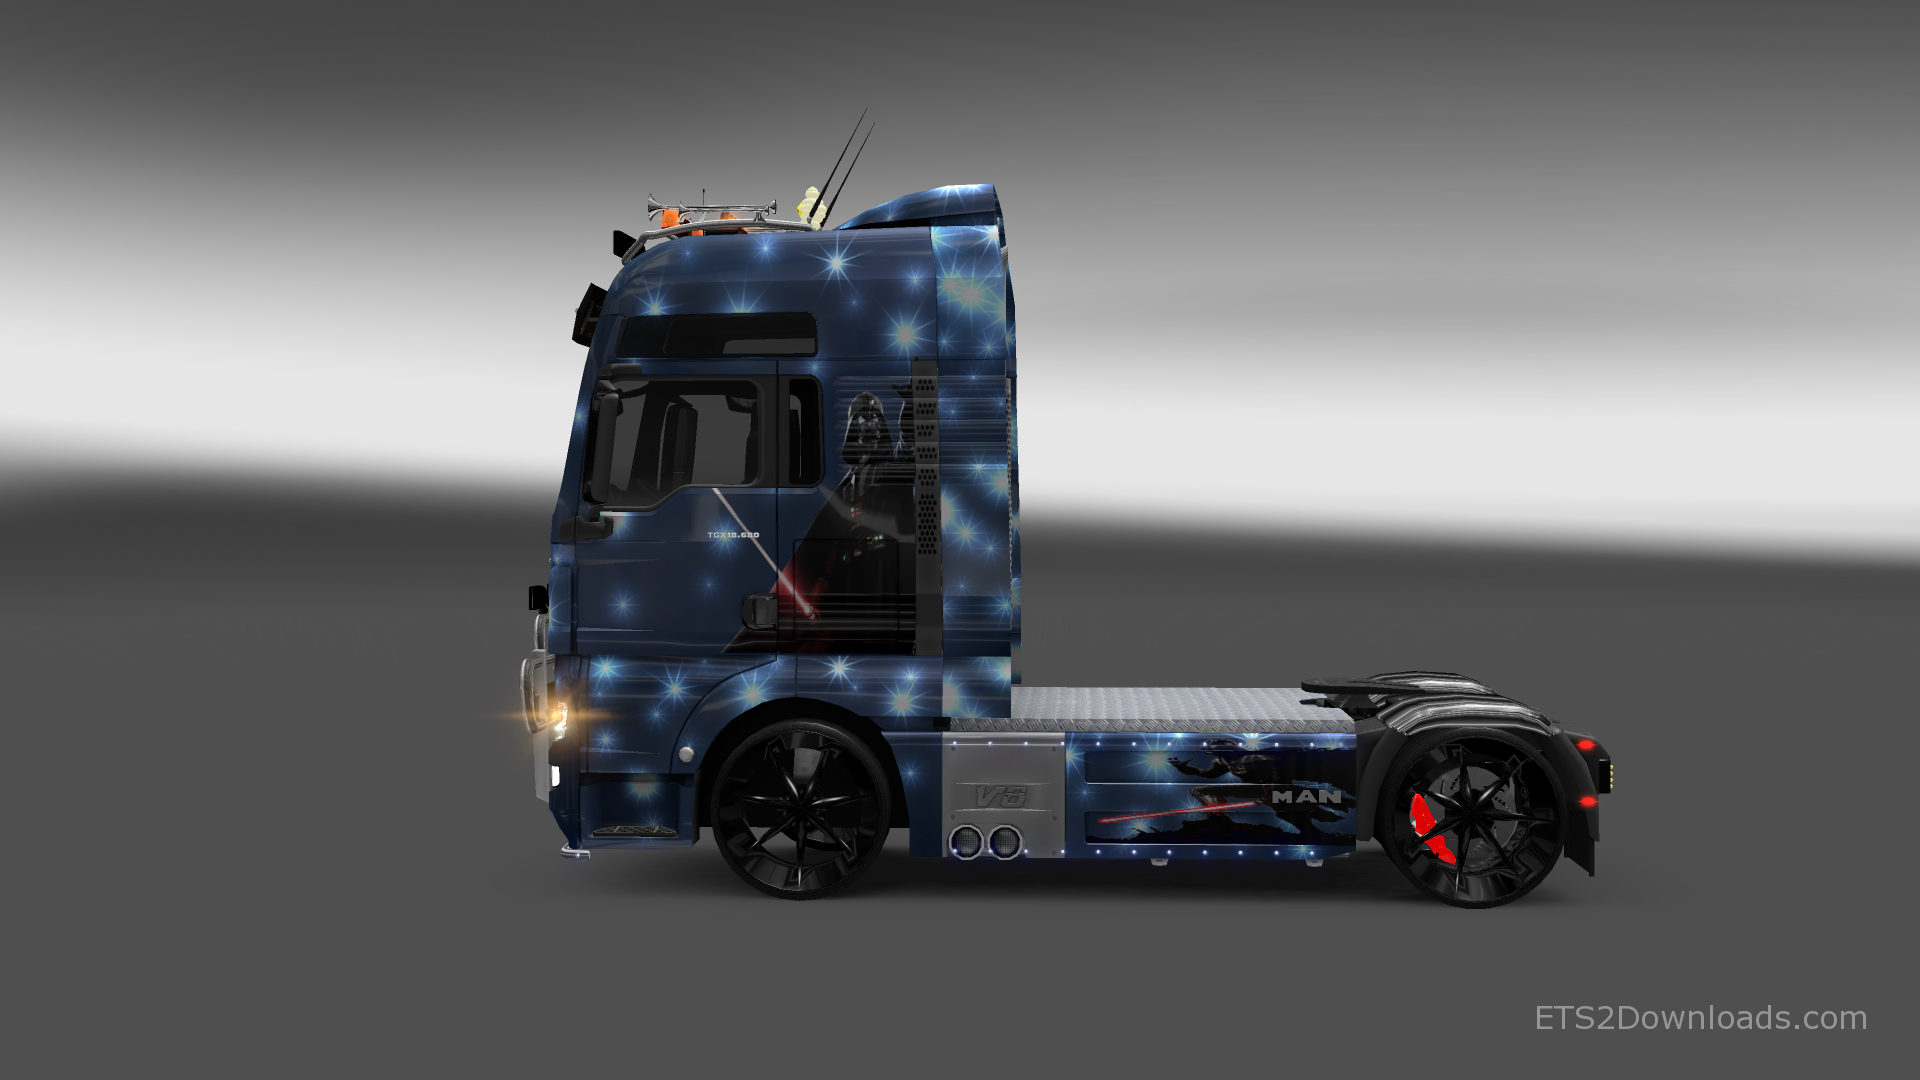 star-wars-skin-for-man-tgx-4